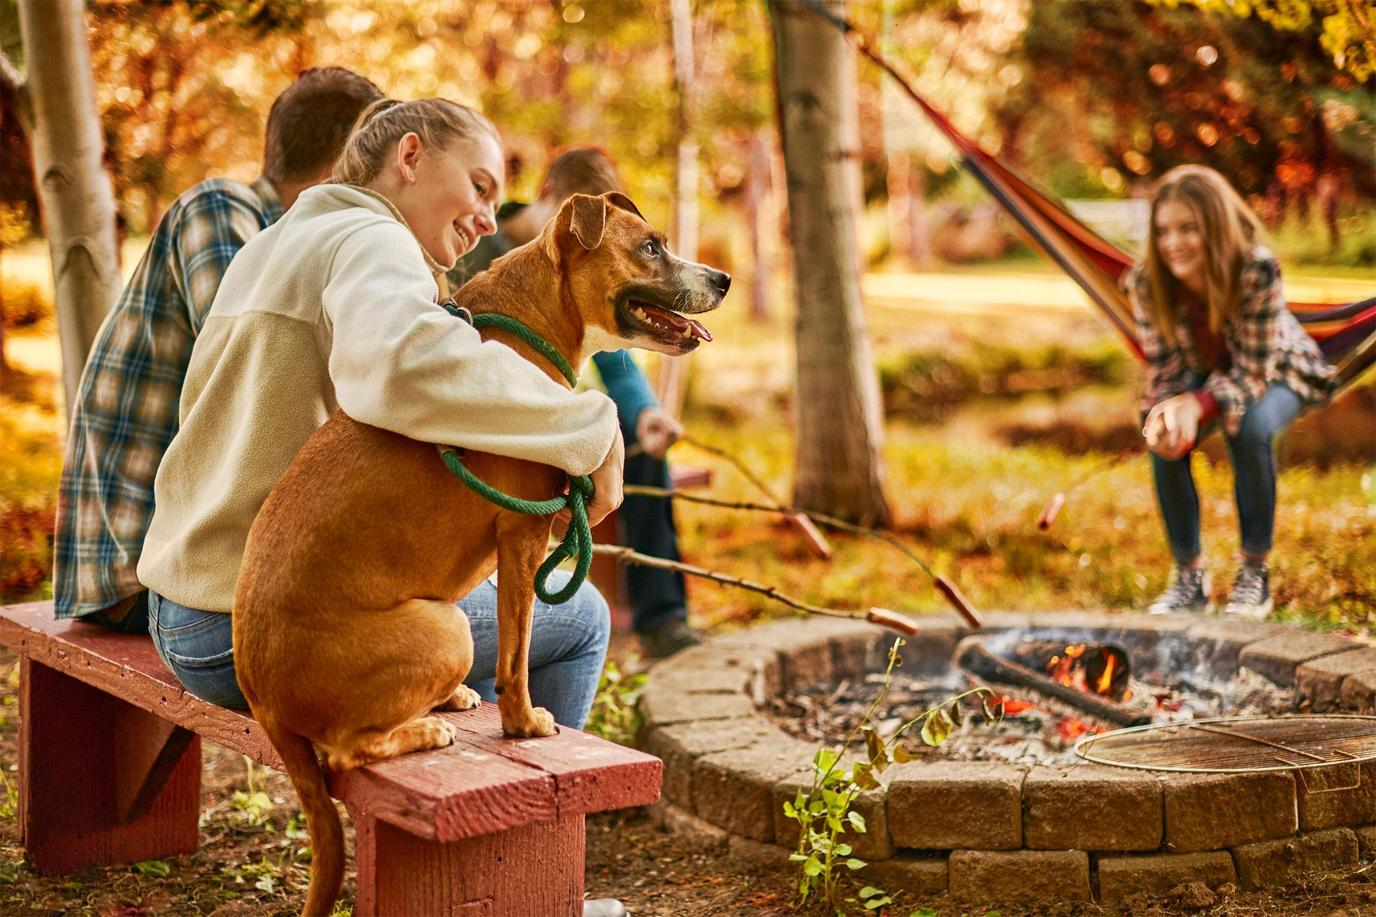 A Family Sits Around a Fire Pit With Their Dog.